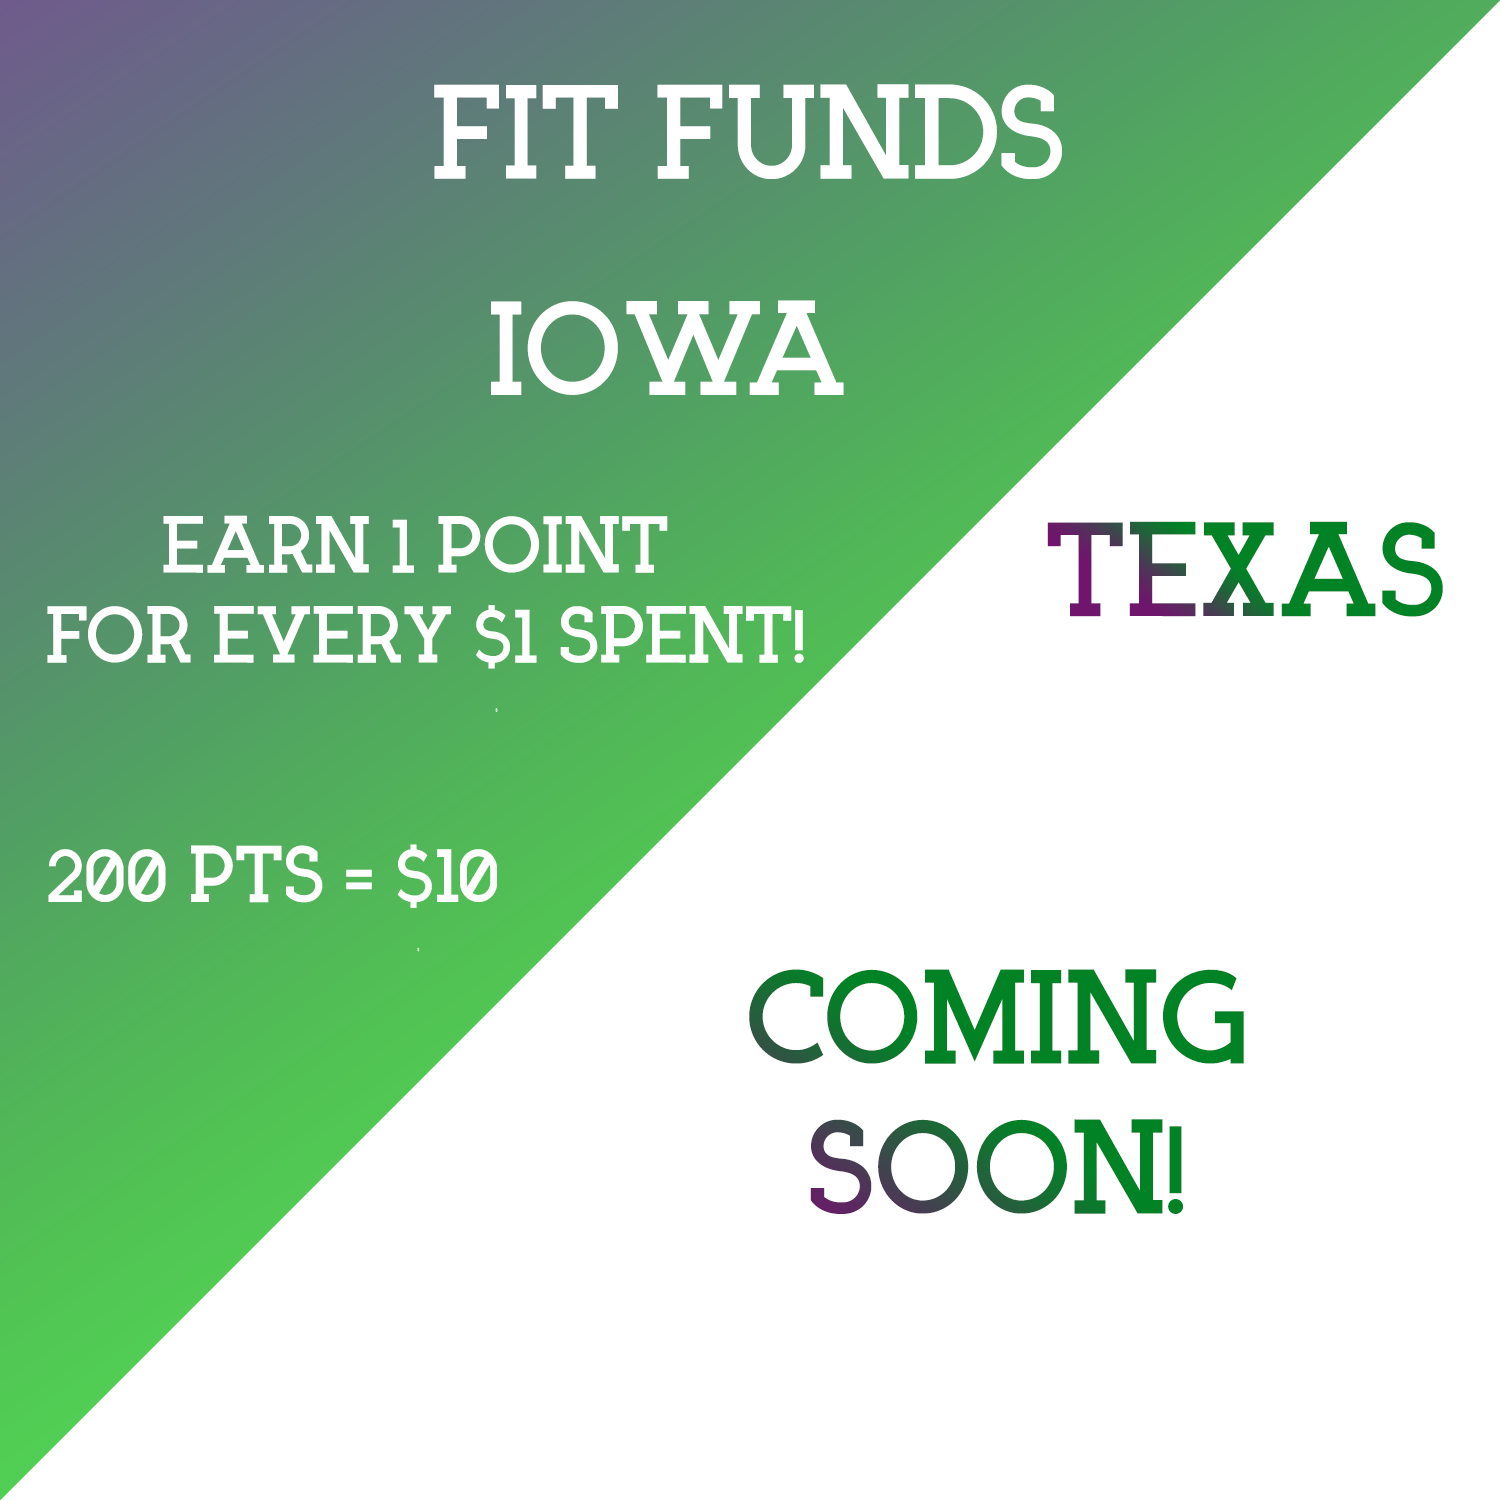 FitFunds4.png